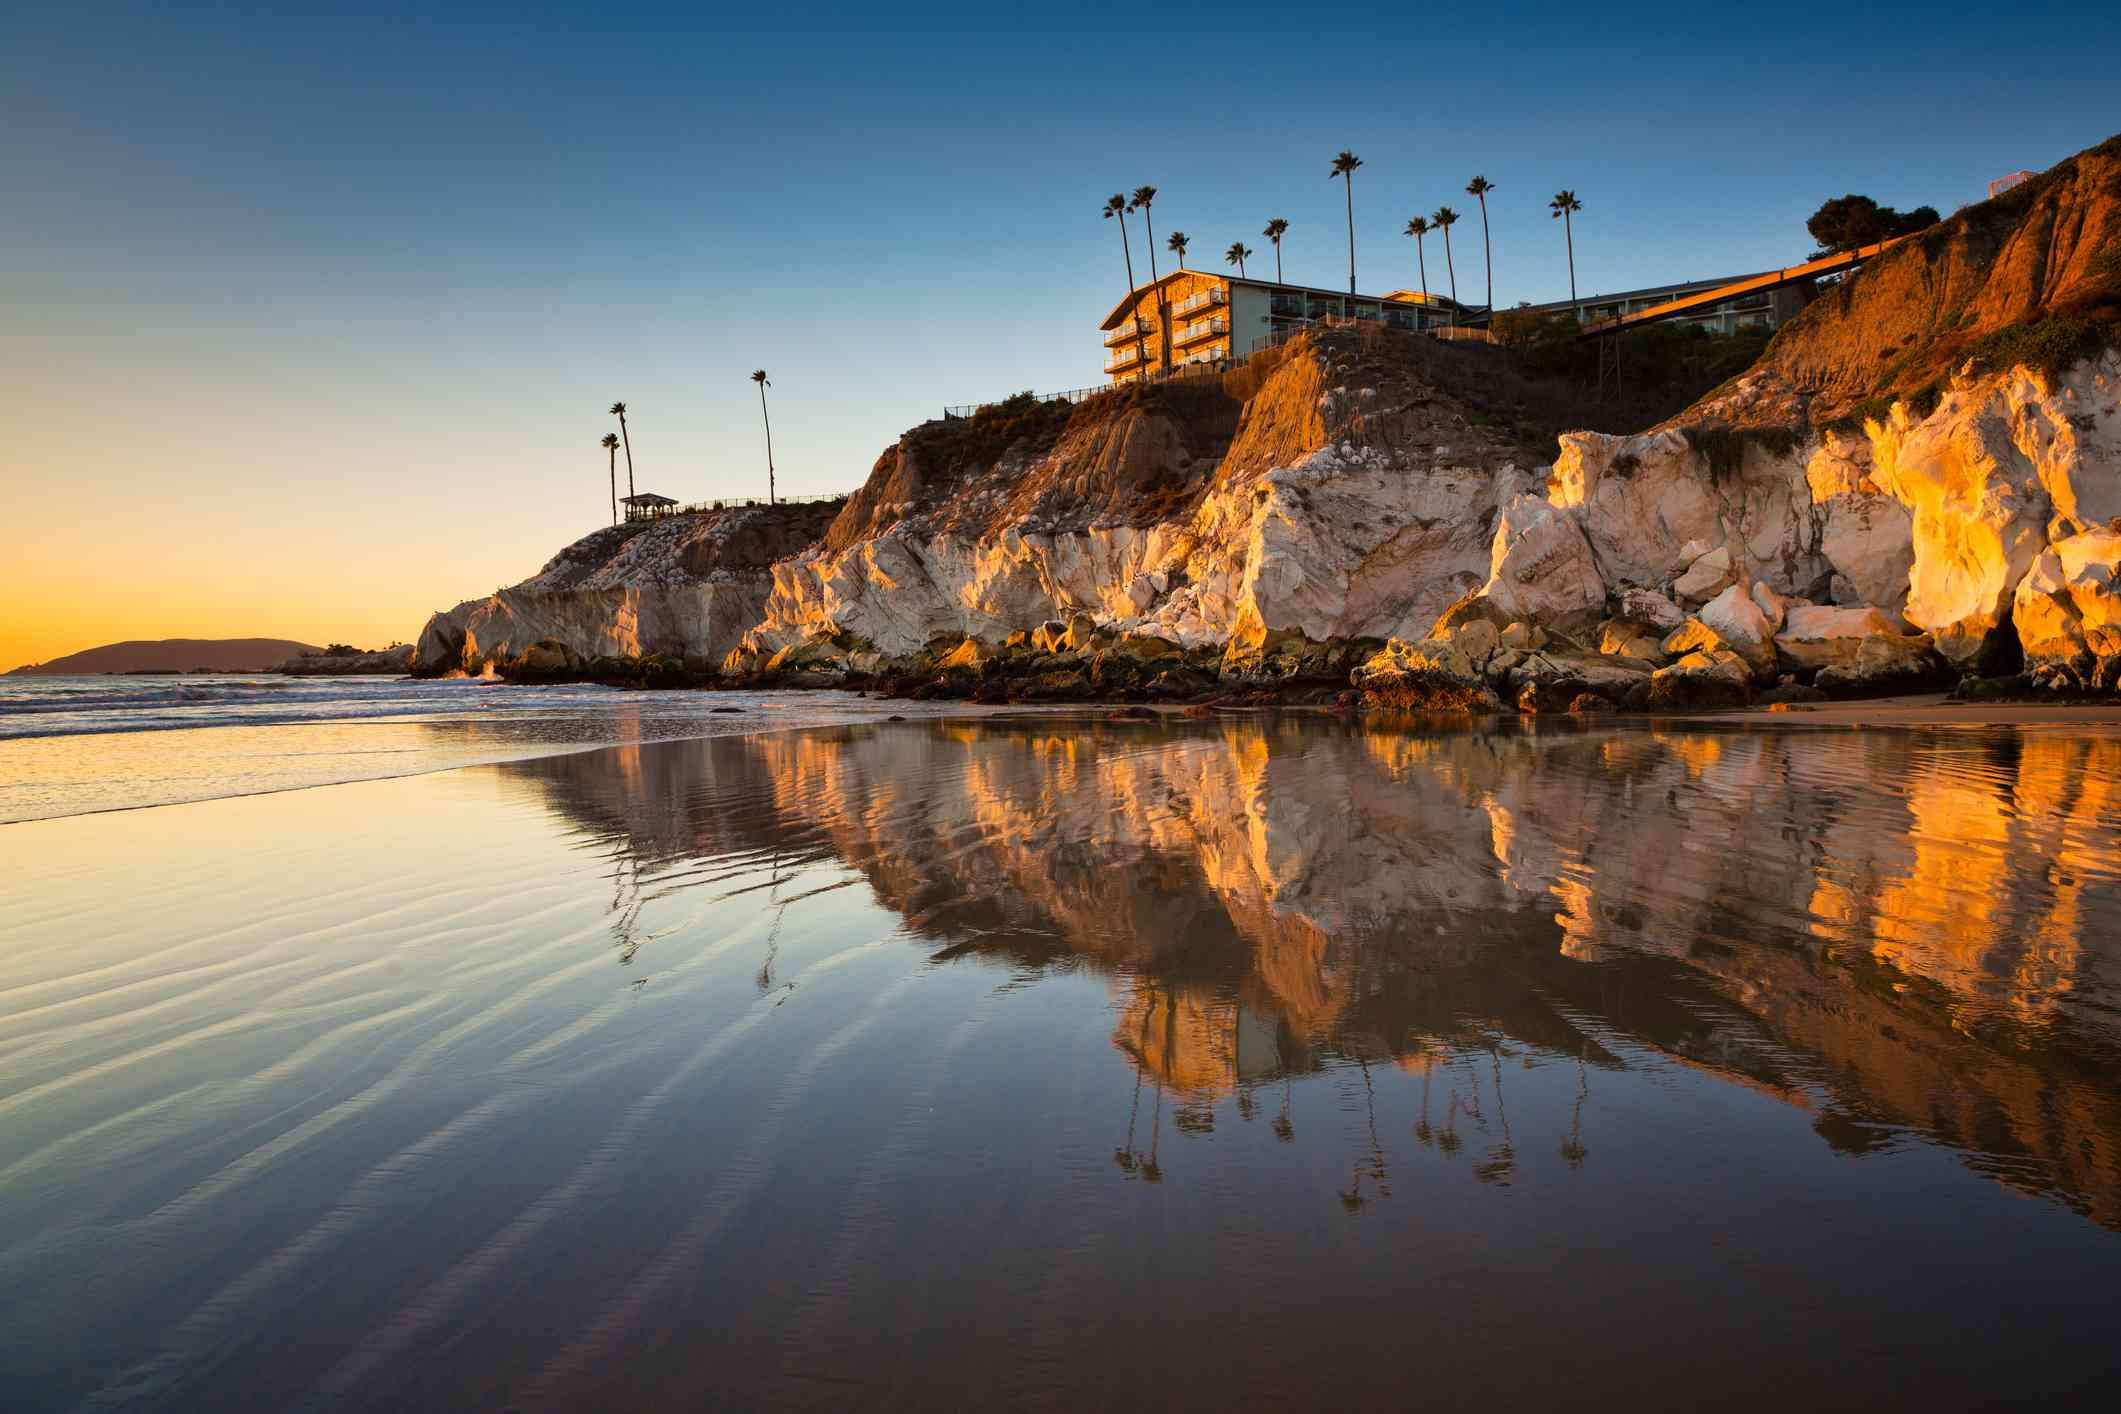 This is a photo taken near sunset at the north end of Pismo Beach, California. It was taken during low tide and the cliffs are reflected in the wet sand.